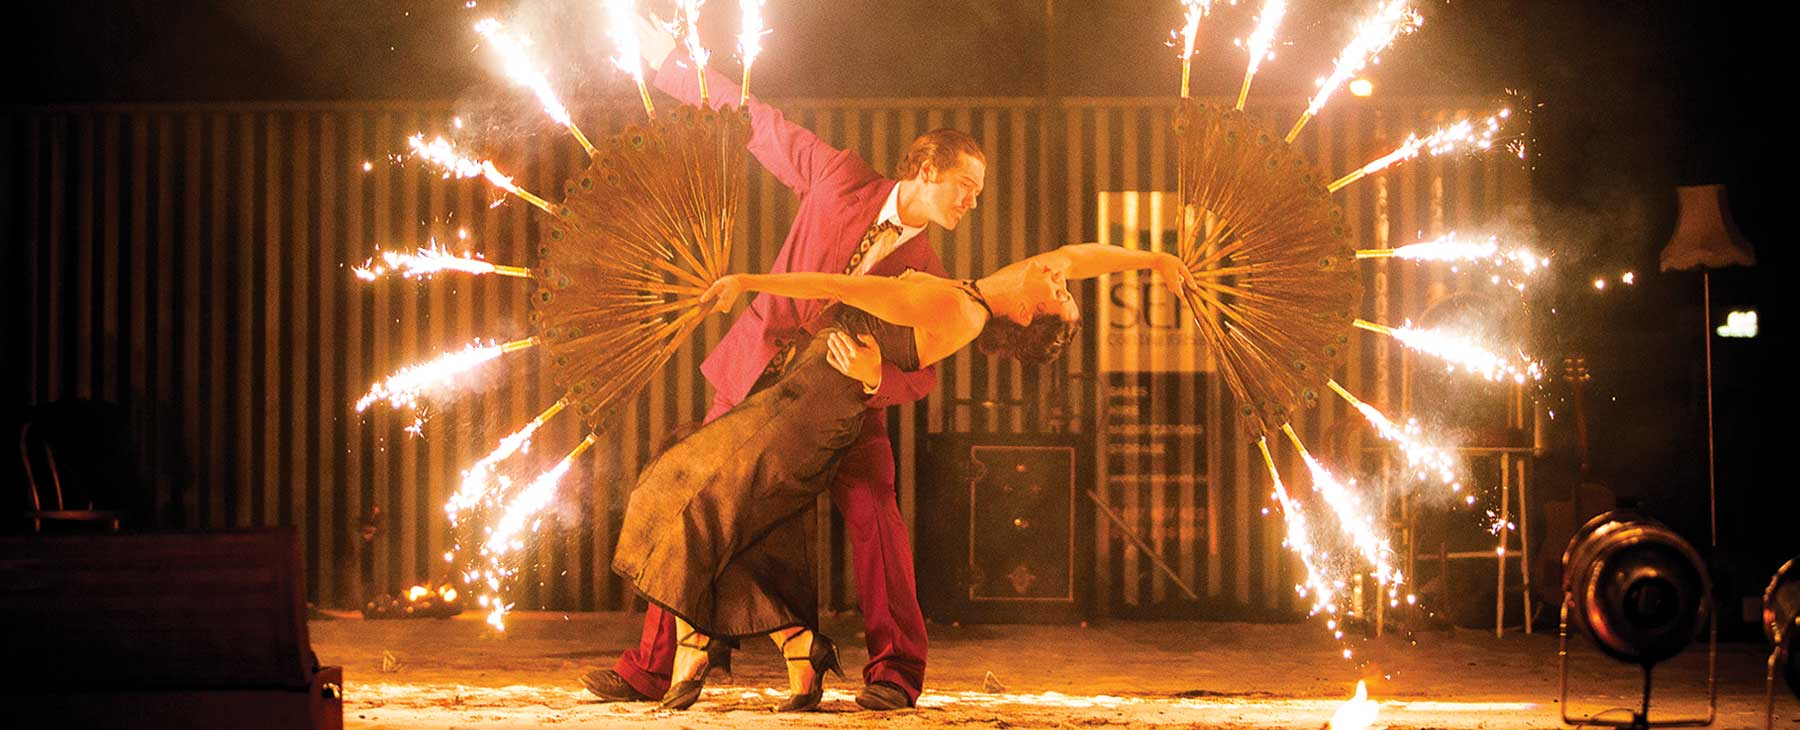 Spanish dancers juggle with fire in front of shipping container